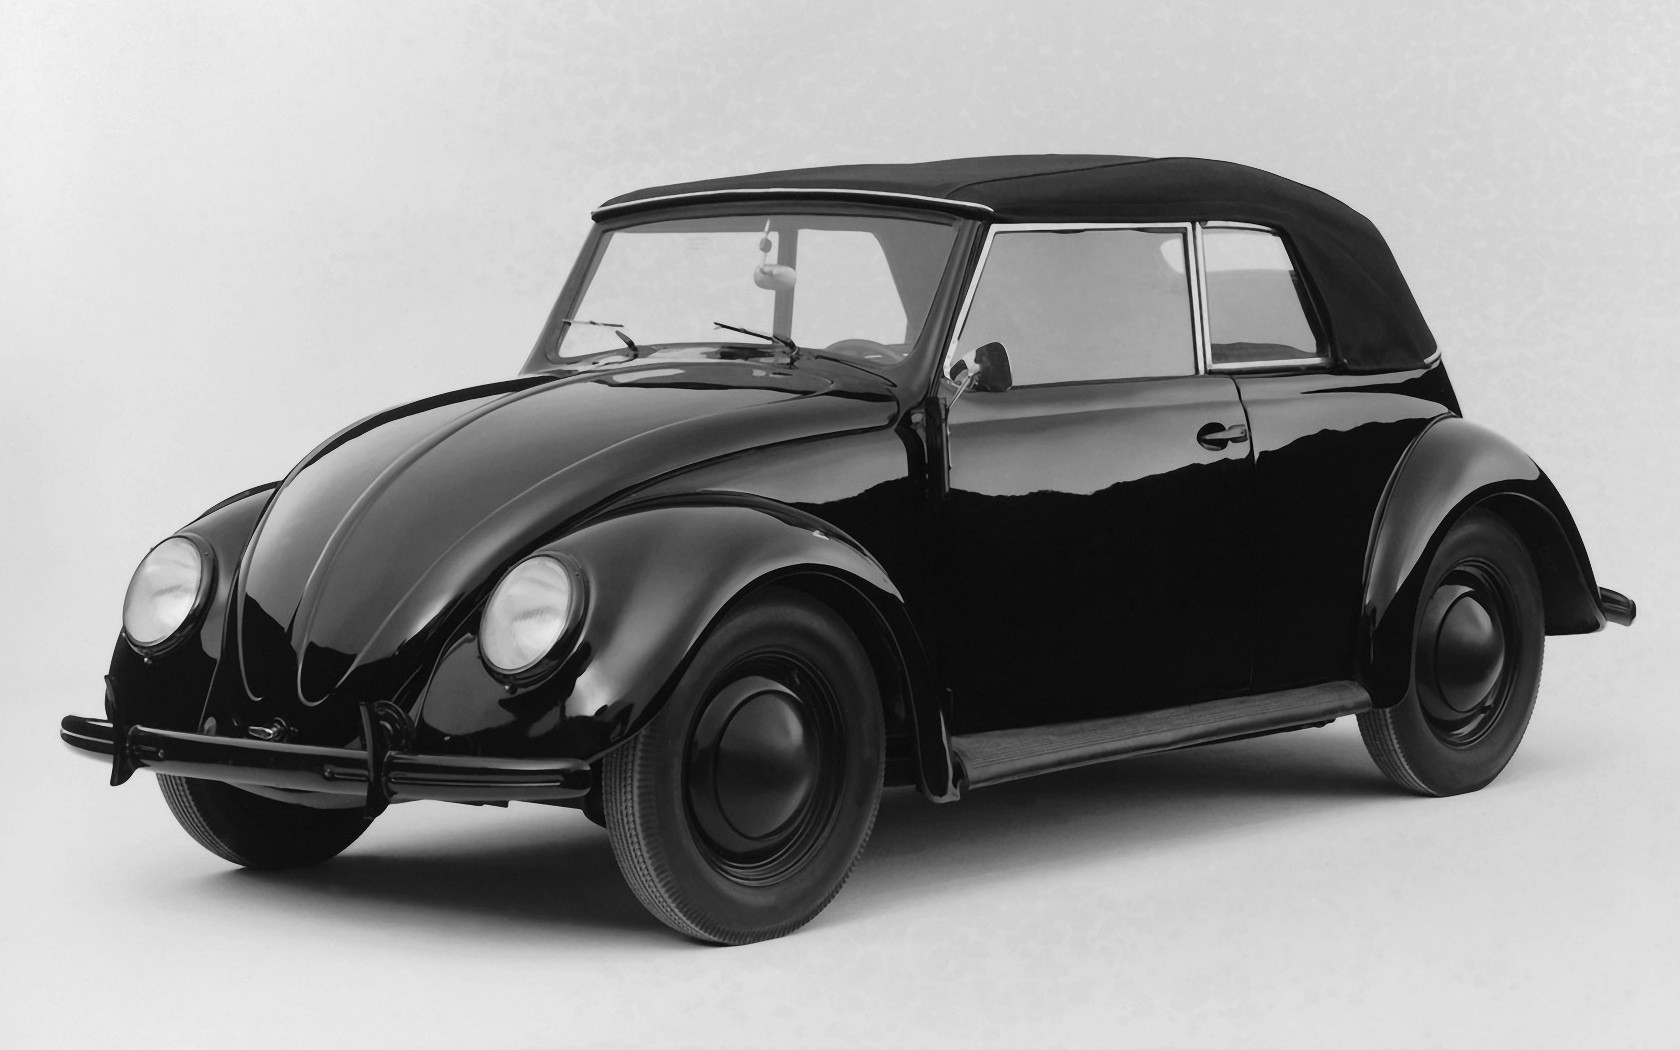 Bug Volkswagen Volkswagen Beetle black cars wallpaper ...